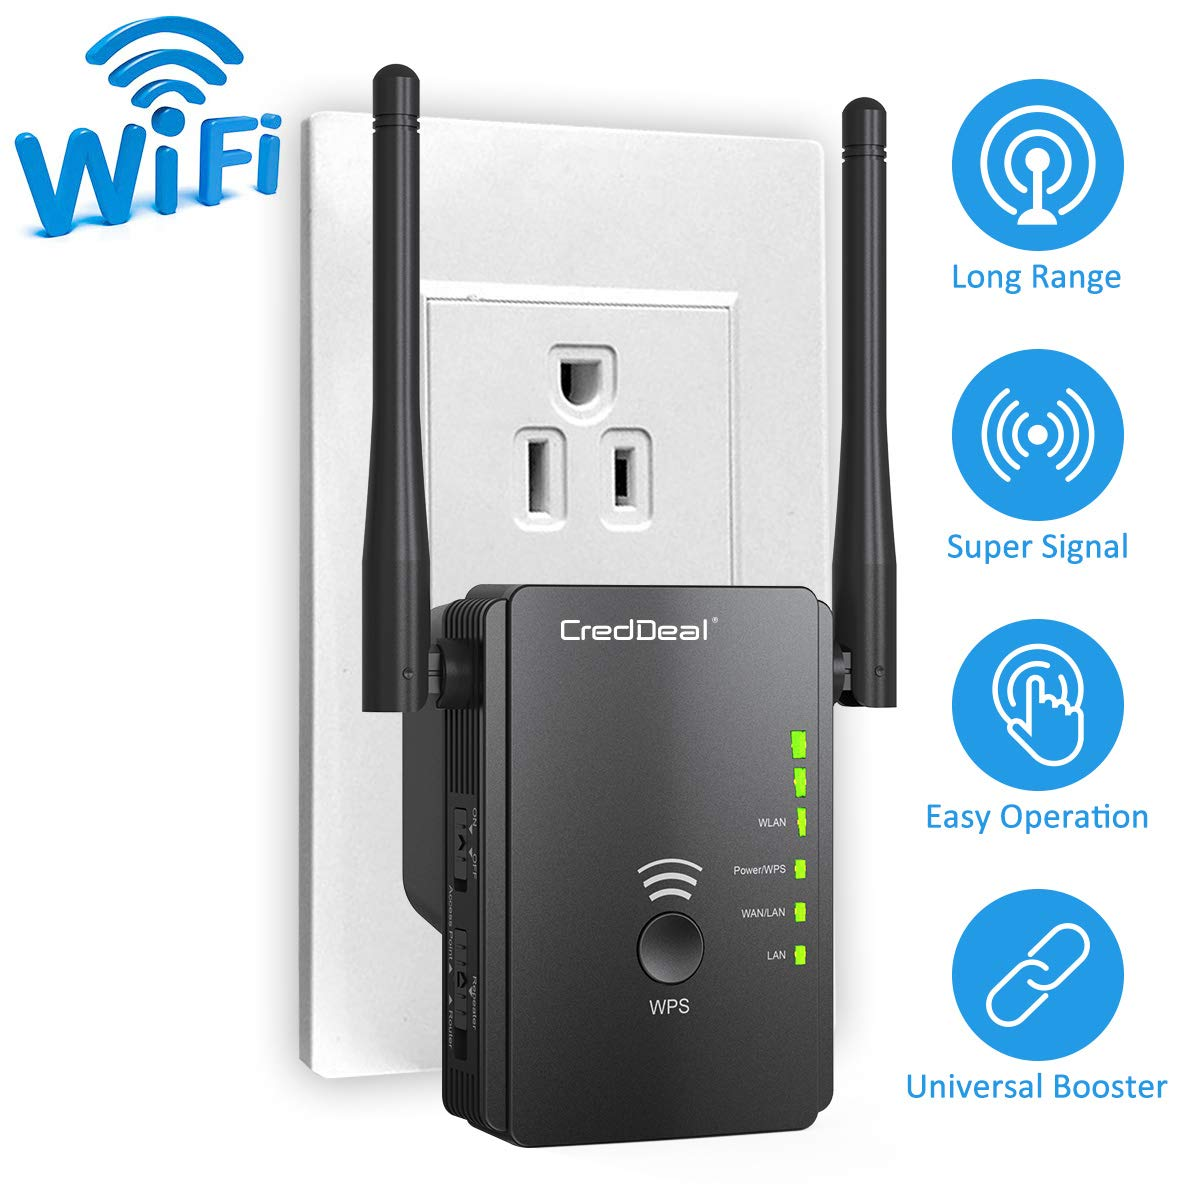 WiFi Range Extender-N300 Wireless Booster with High Gain Dual Antennas-2.4GHz Internet Signal Repeater with 2 Ethernet Ports for Whole Home Wi-Fi Coverage Compatible with Alexa Device (300Mbps)